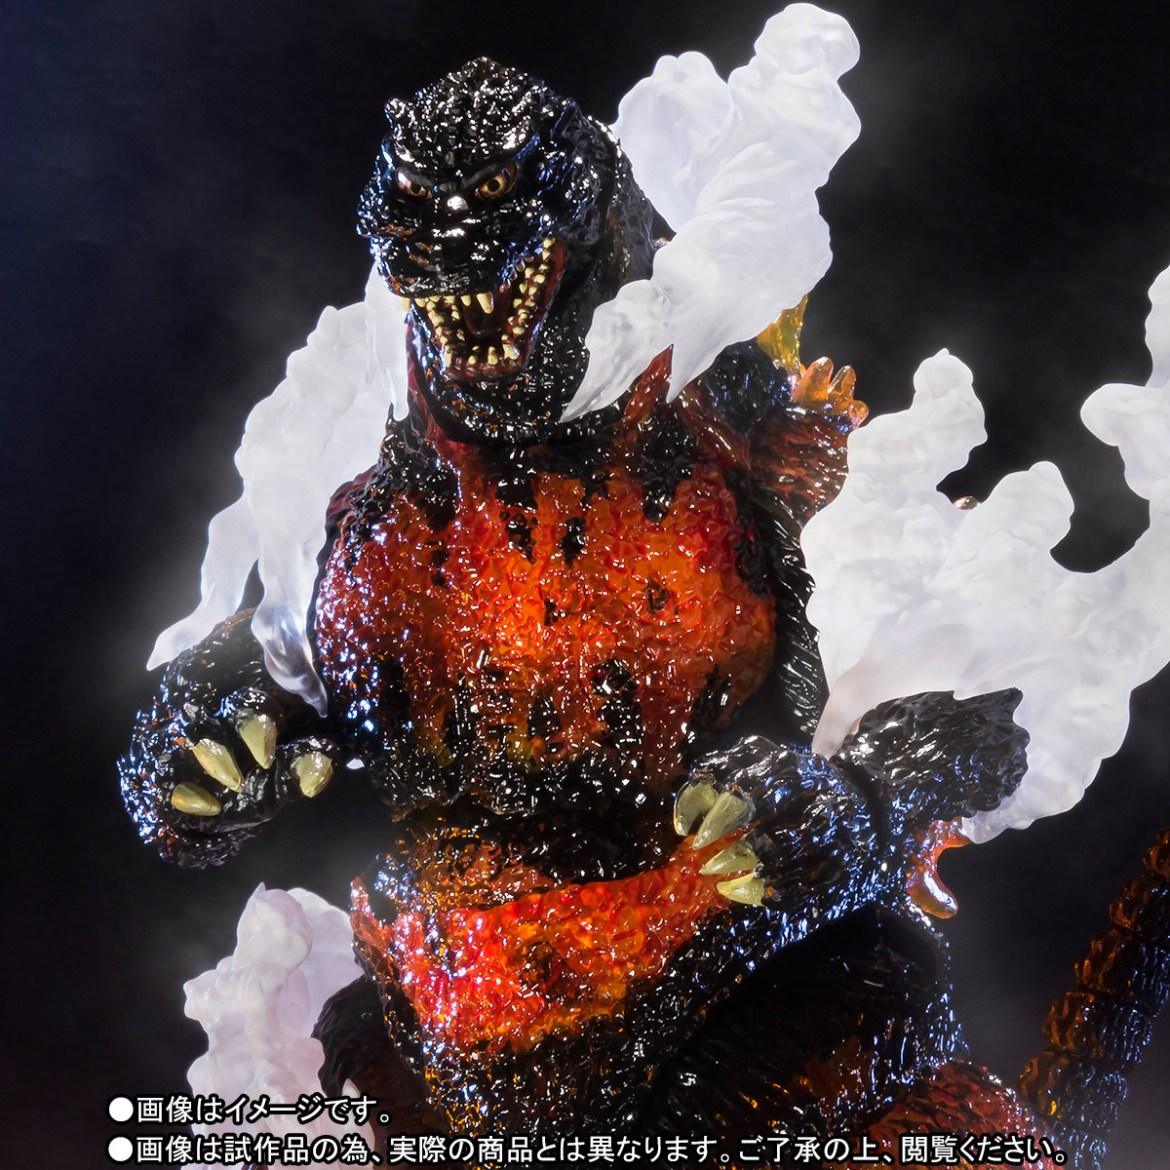 S.H. Monsterarts Ultimate Burning Godzilla